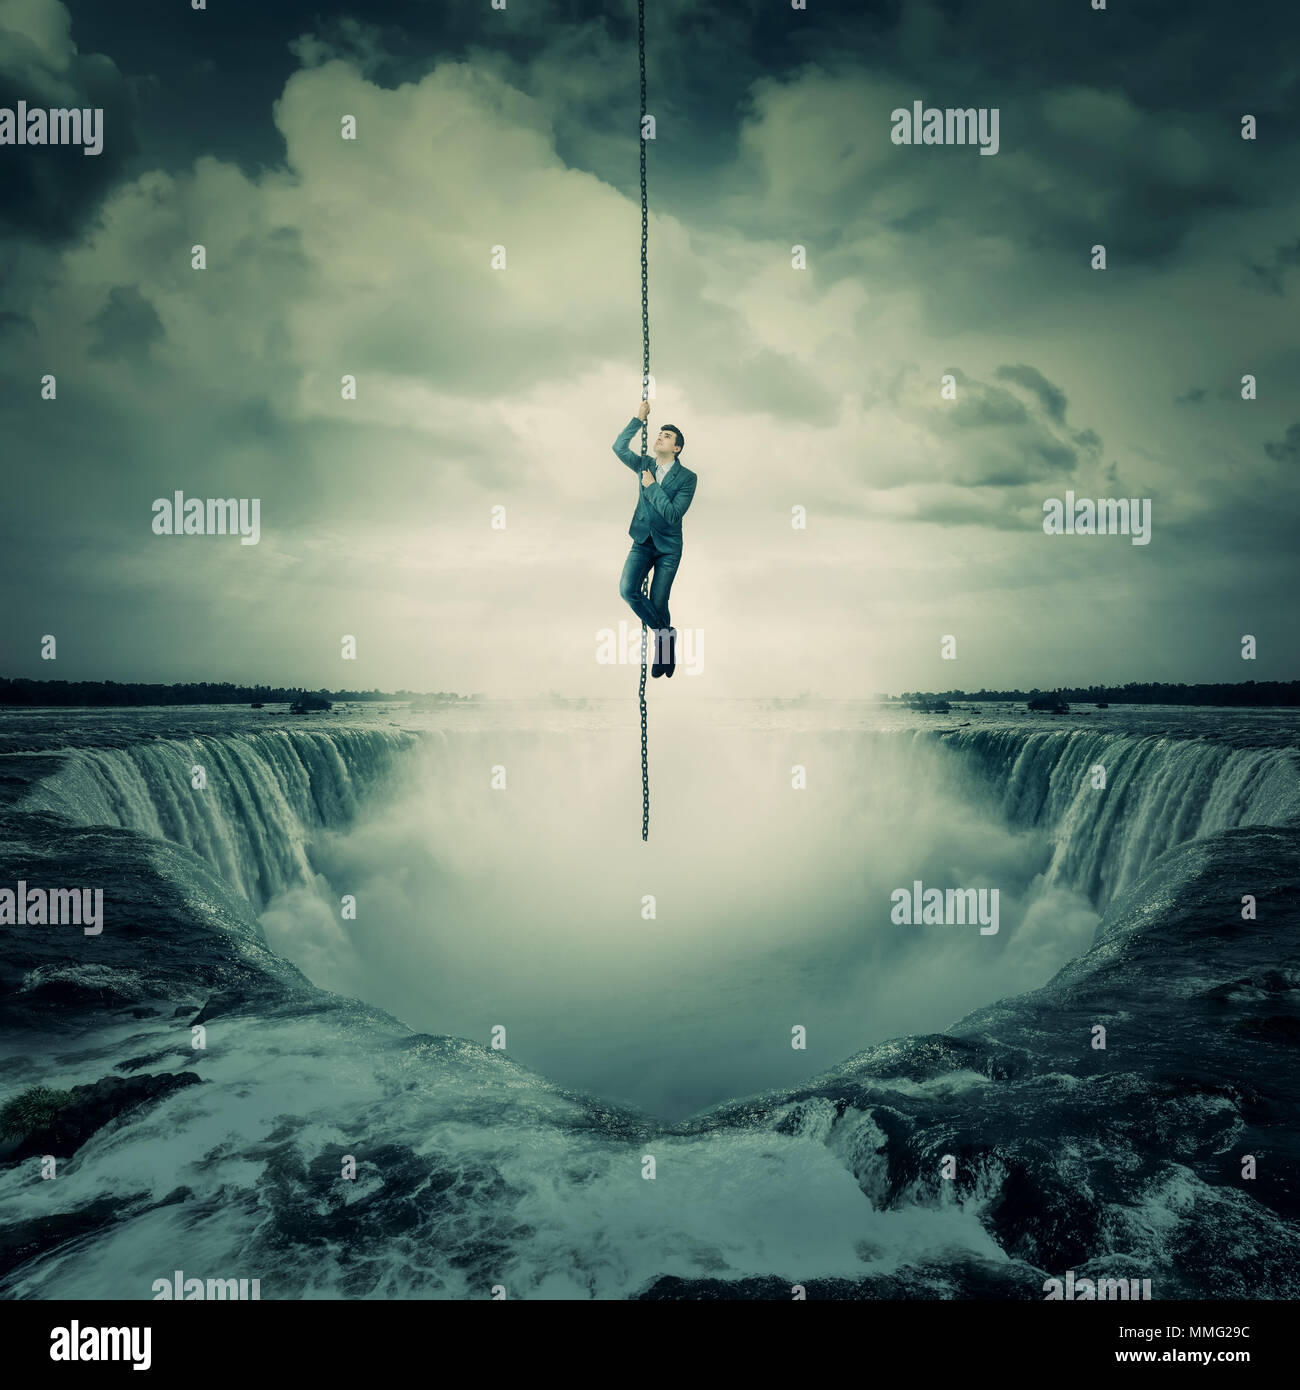 Businessman salvation, surviving the storm buiness concept as a scared man hanging on a chain escape above a waterfall, trying to climb up. Risk symbo - Stock Image